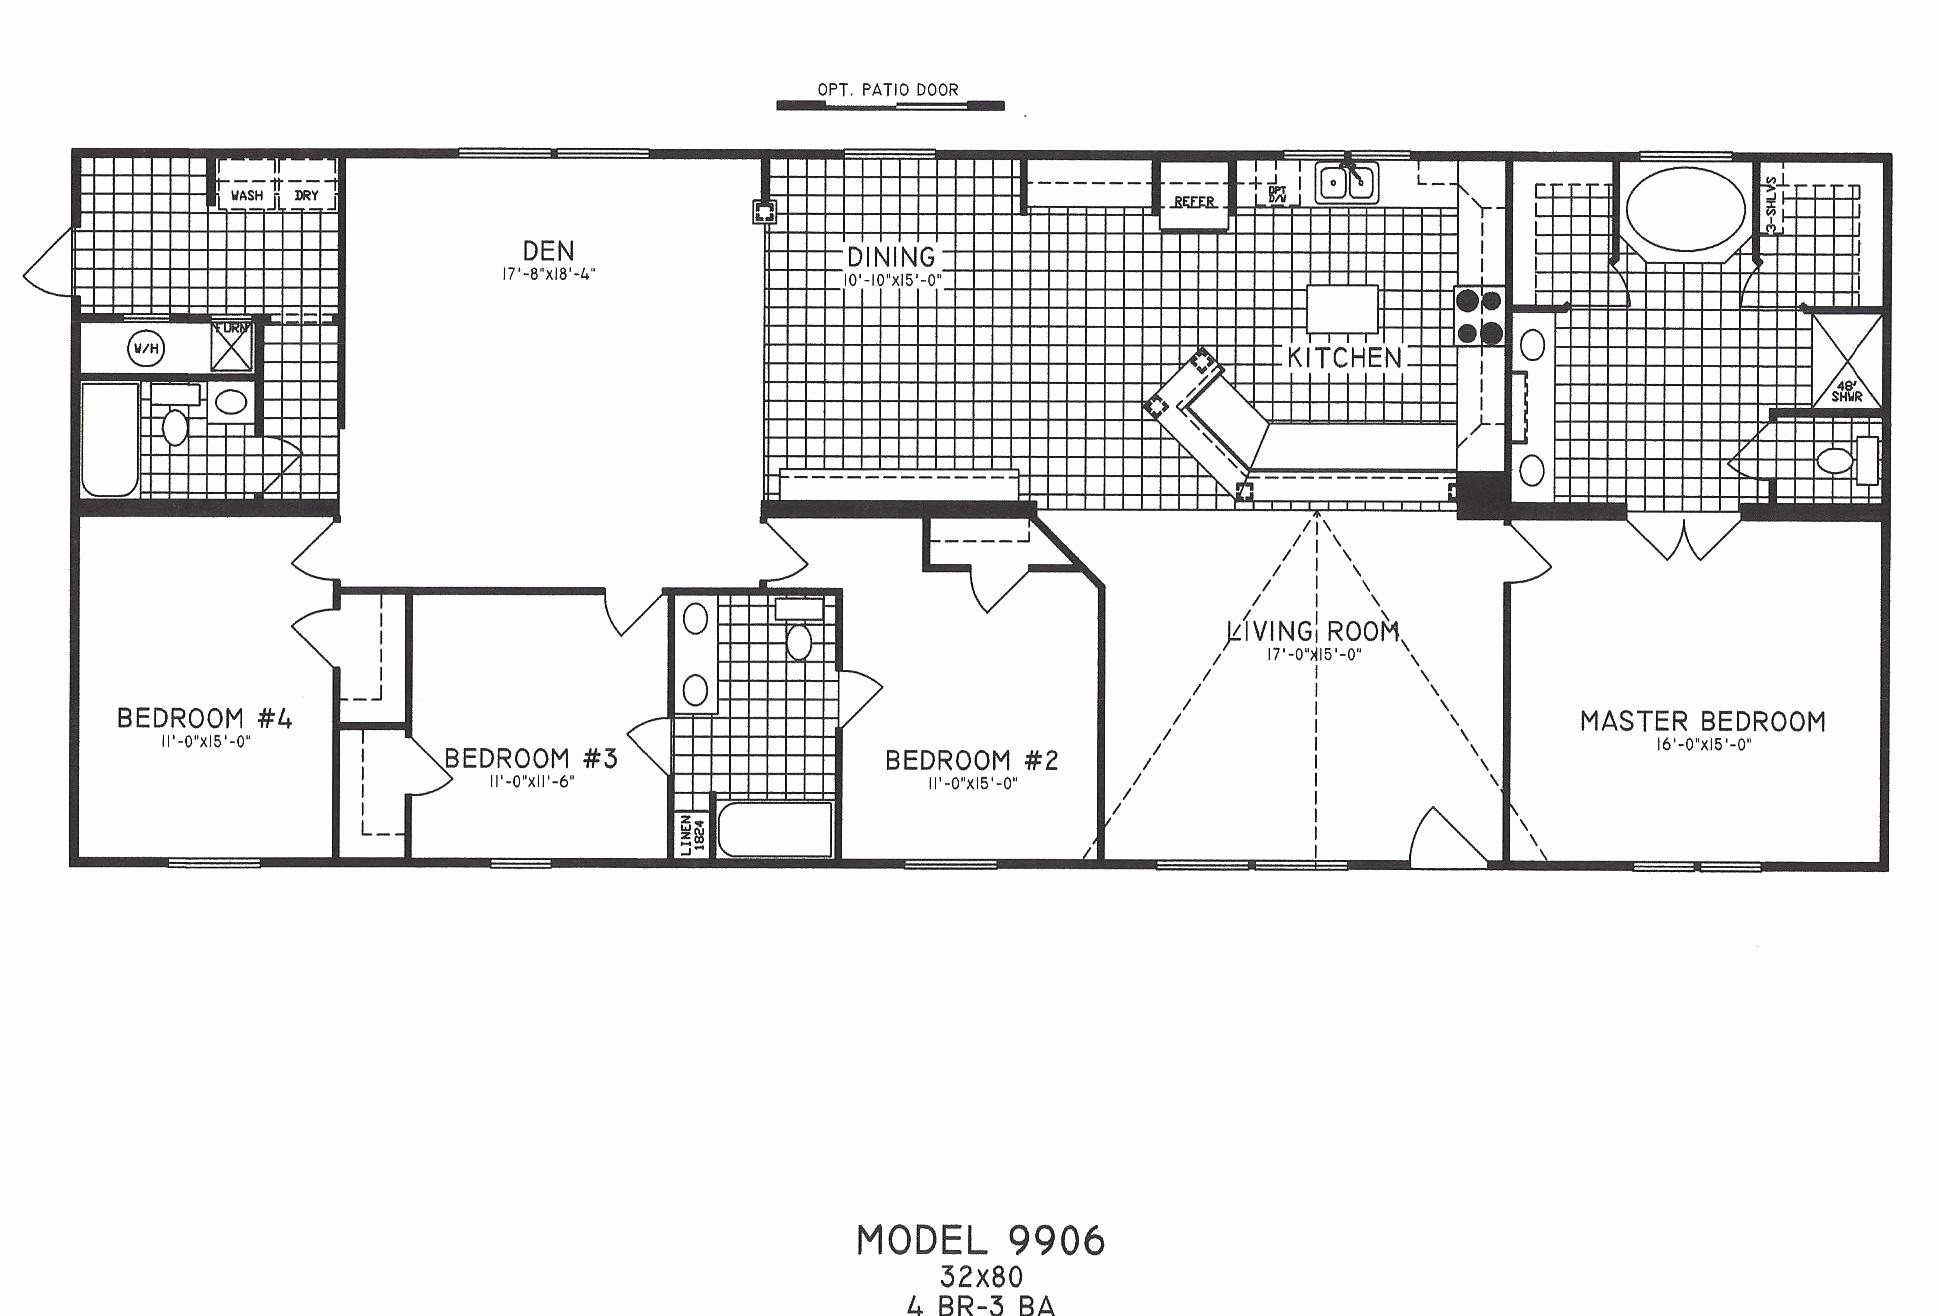 House Plans with Jack and Jill Bathroom Stylish 2 Story House Plans with Jack and Jill Bathroom New Jack and Jill Construction